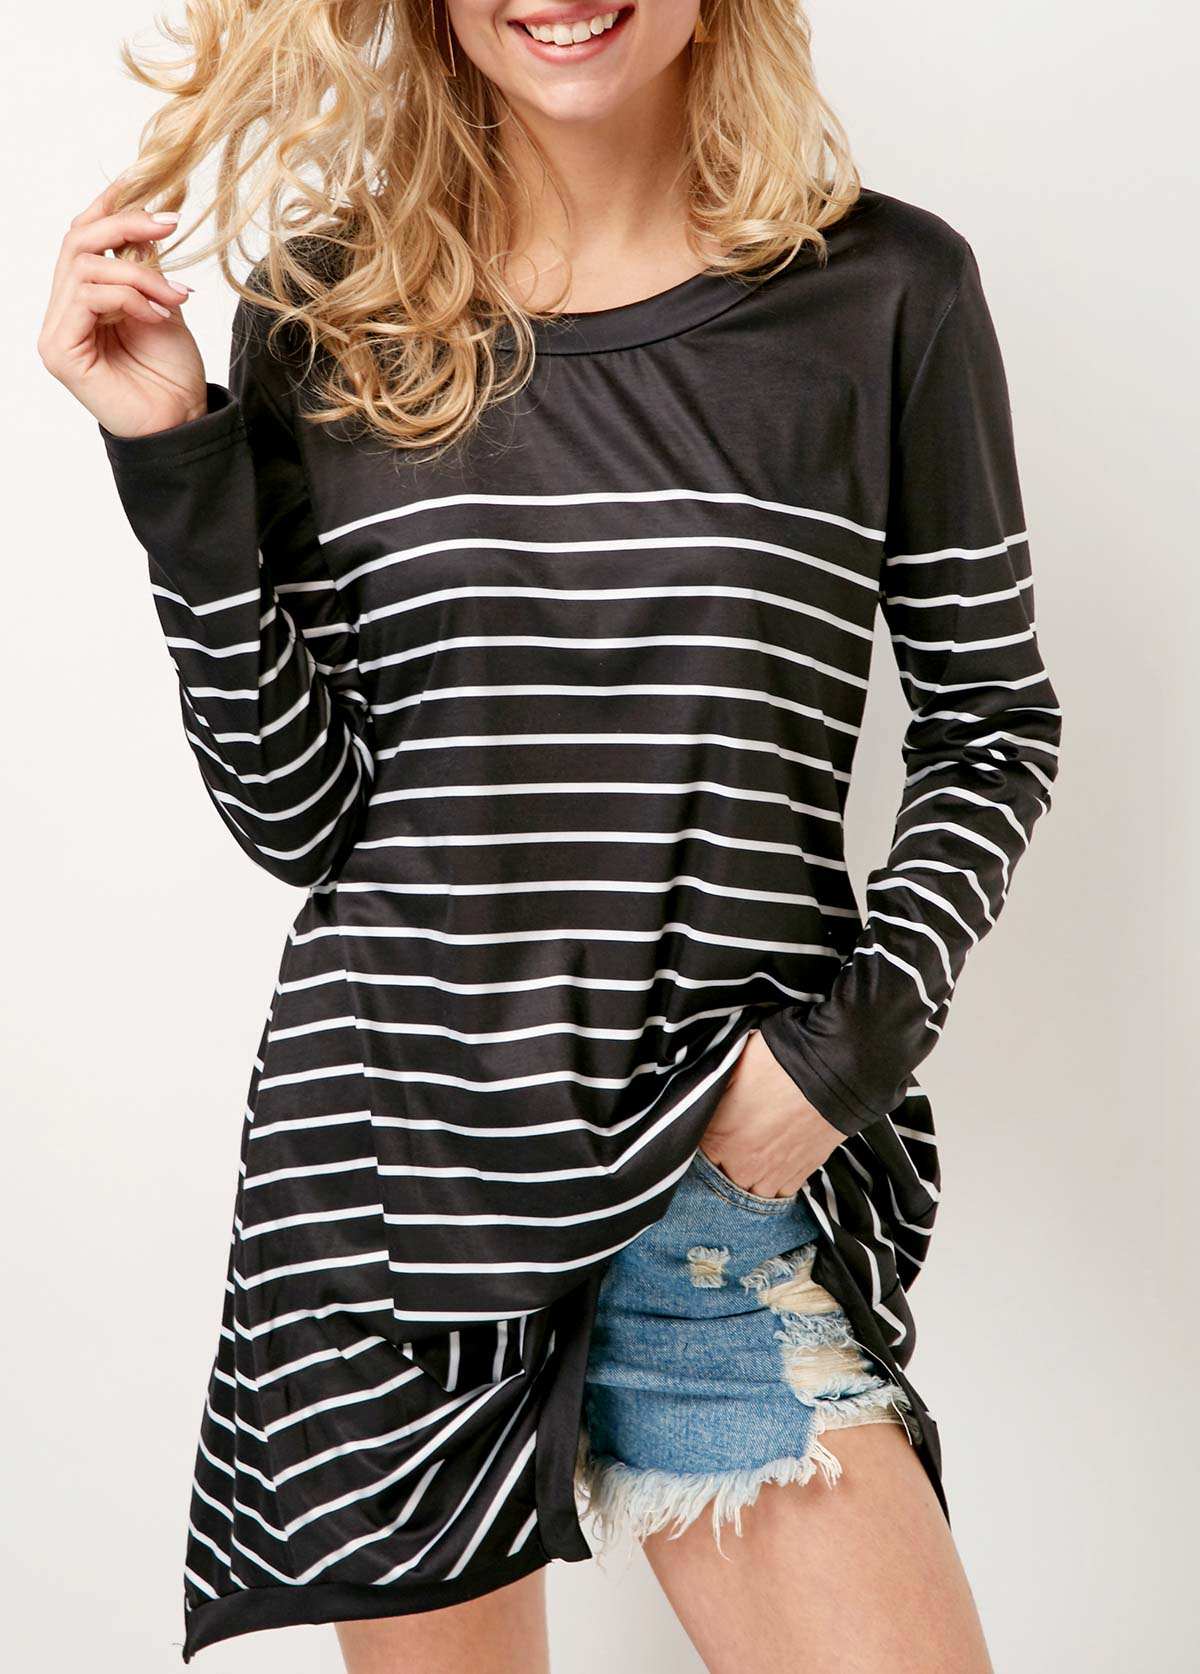 Stripe Print Long Sleeve Round Neck Black T Shirt